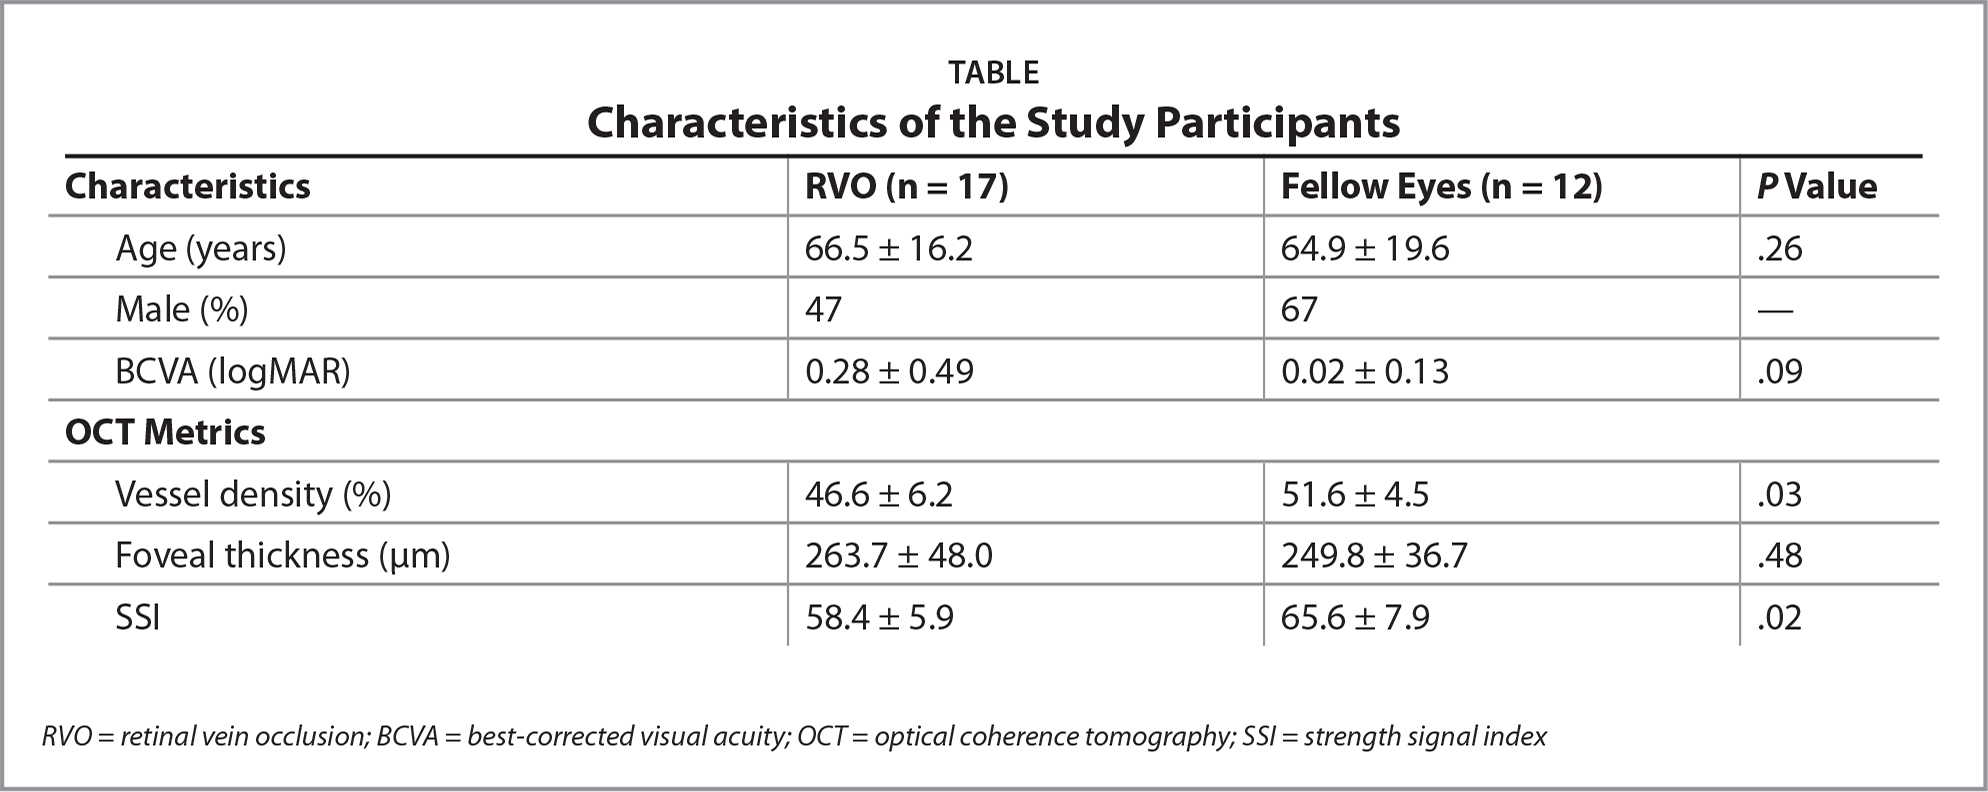 Characteristics of the Study Participants